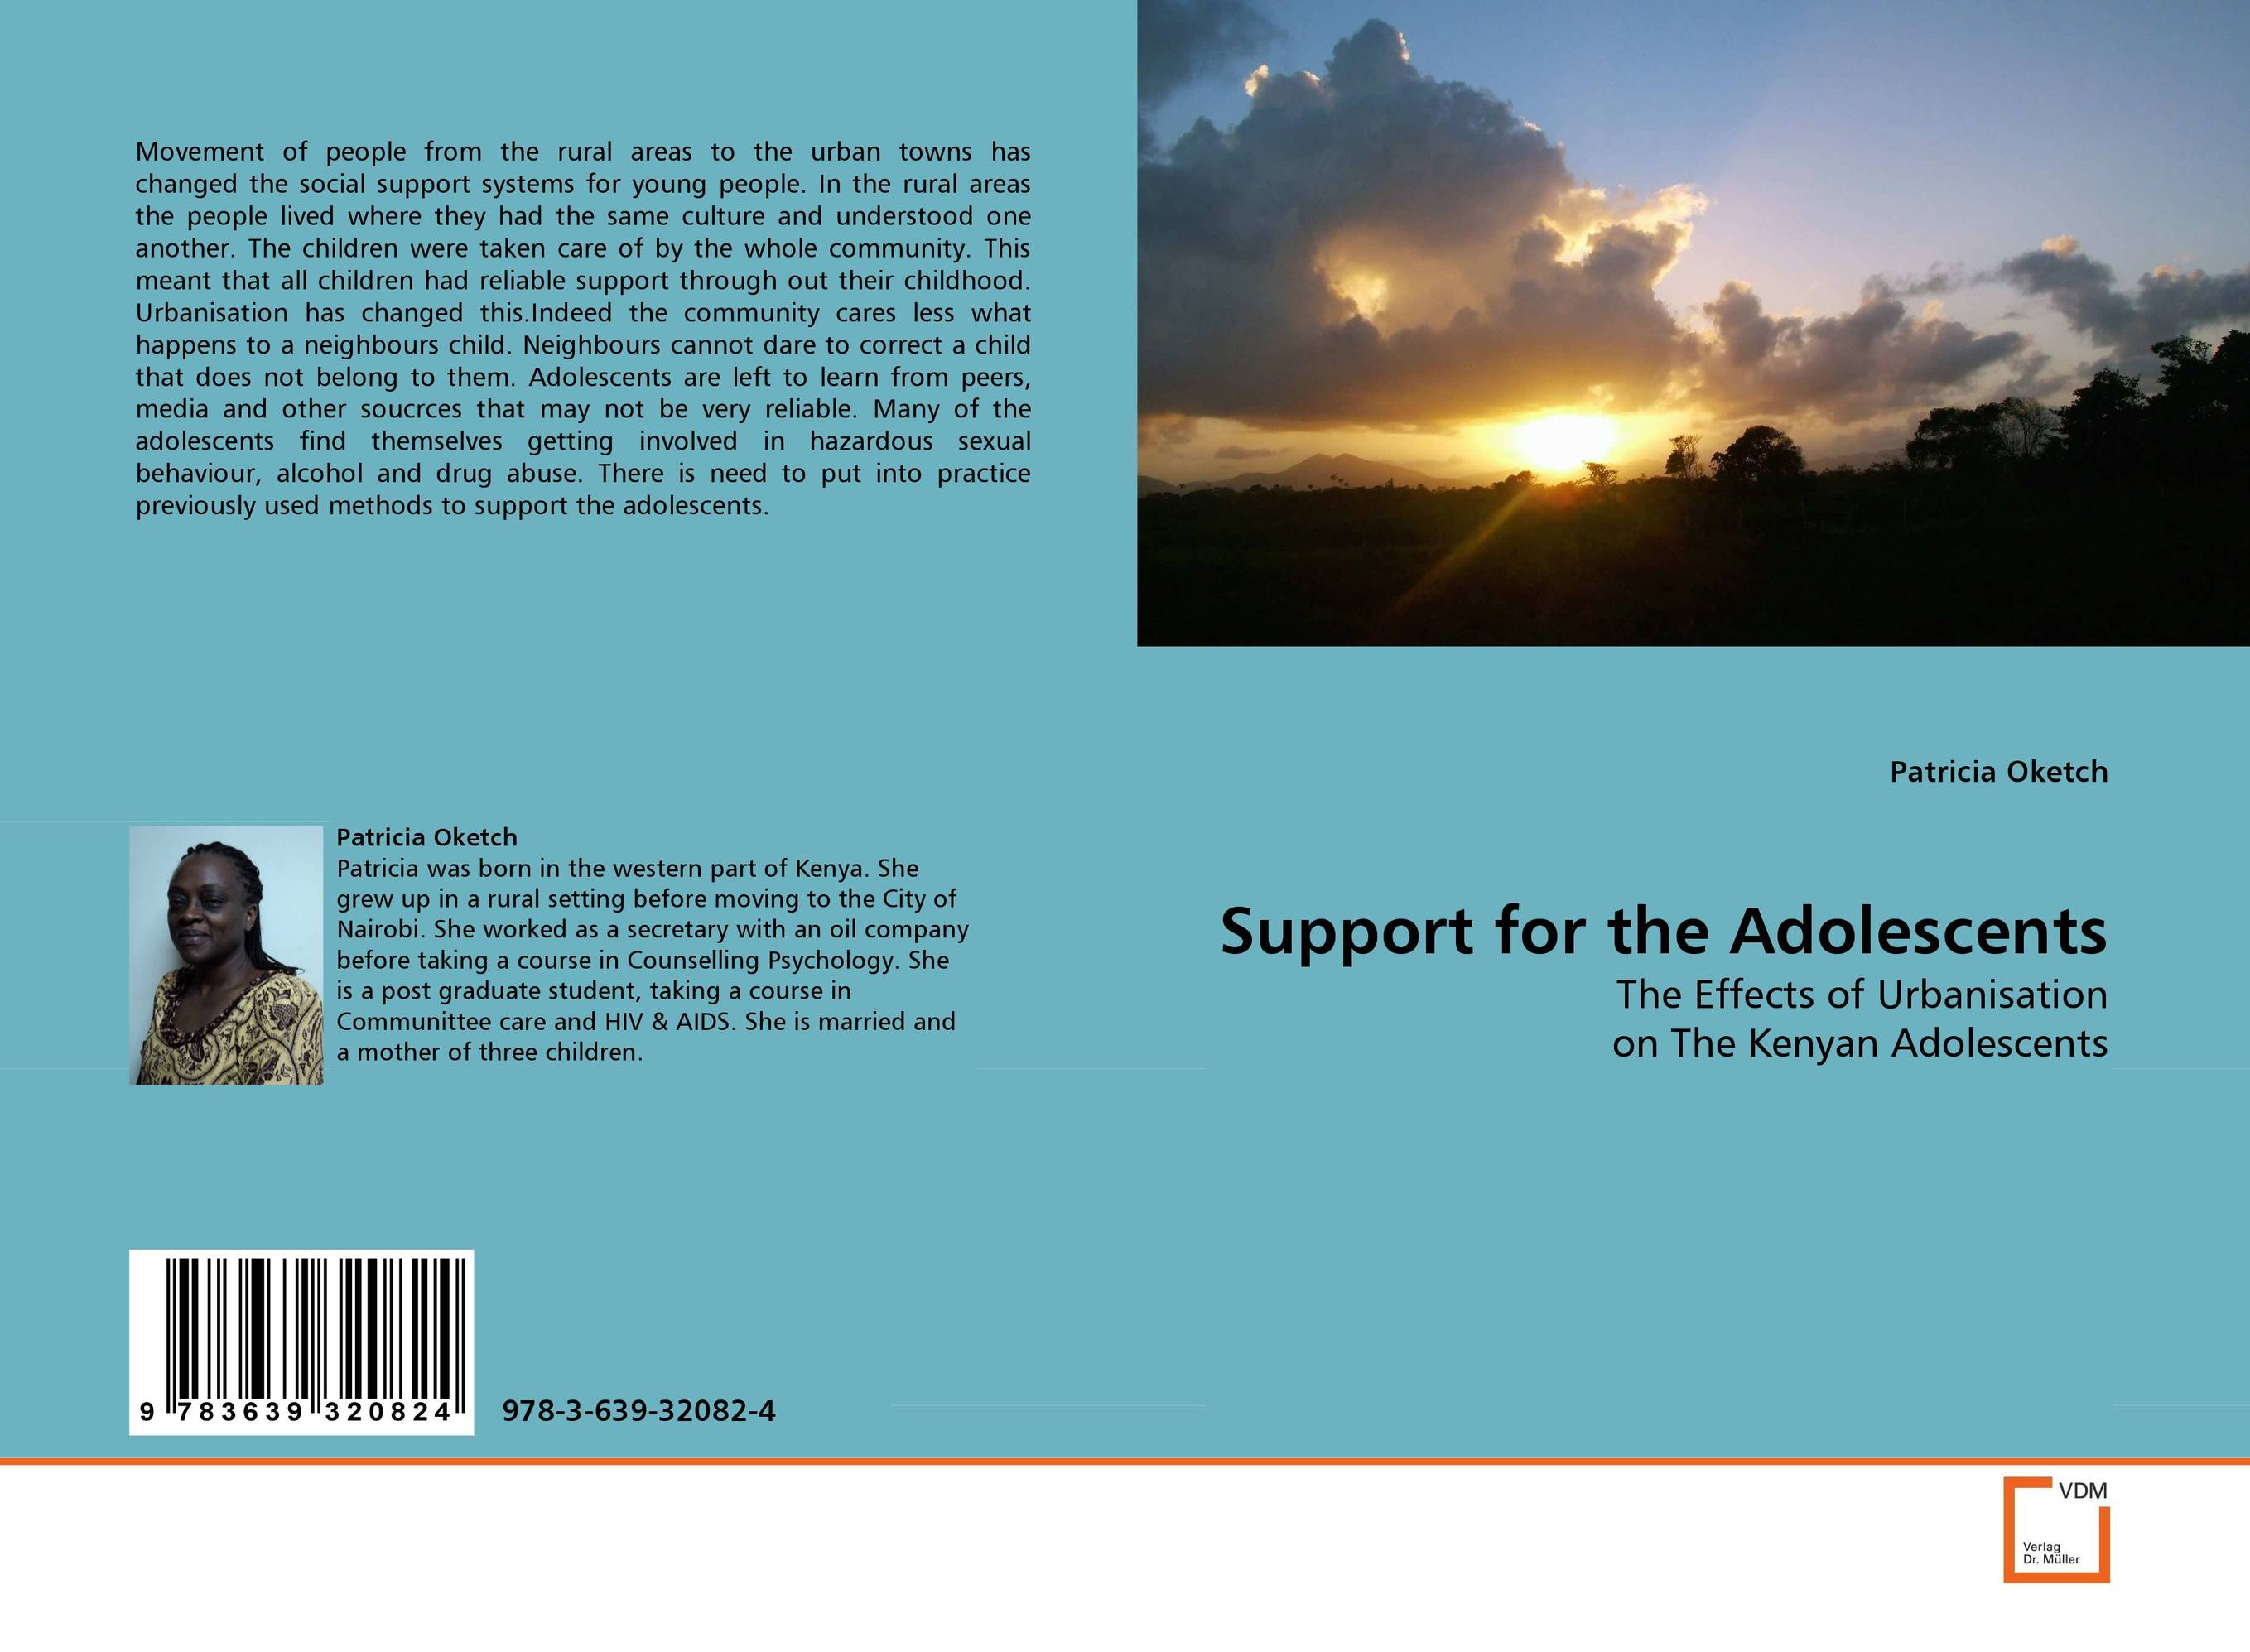 Support for the Adolescents